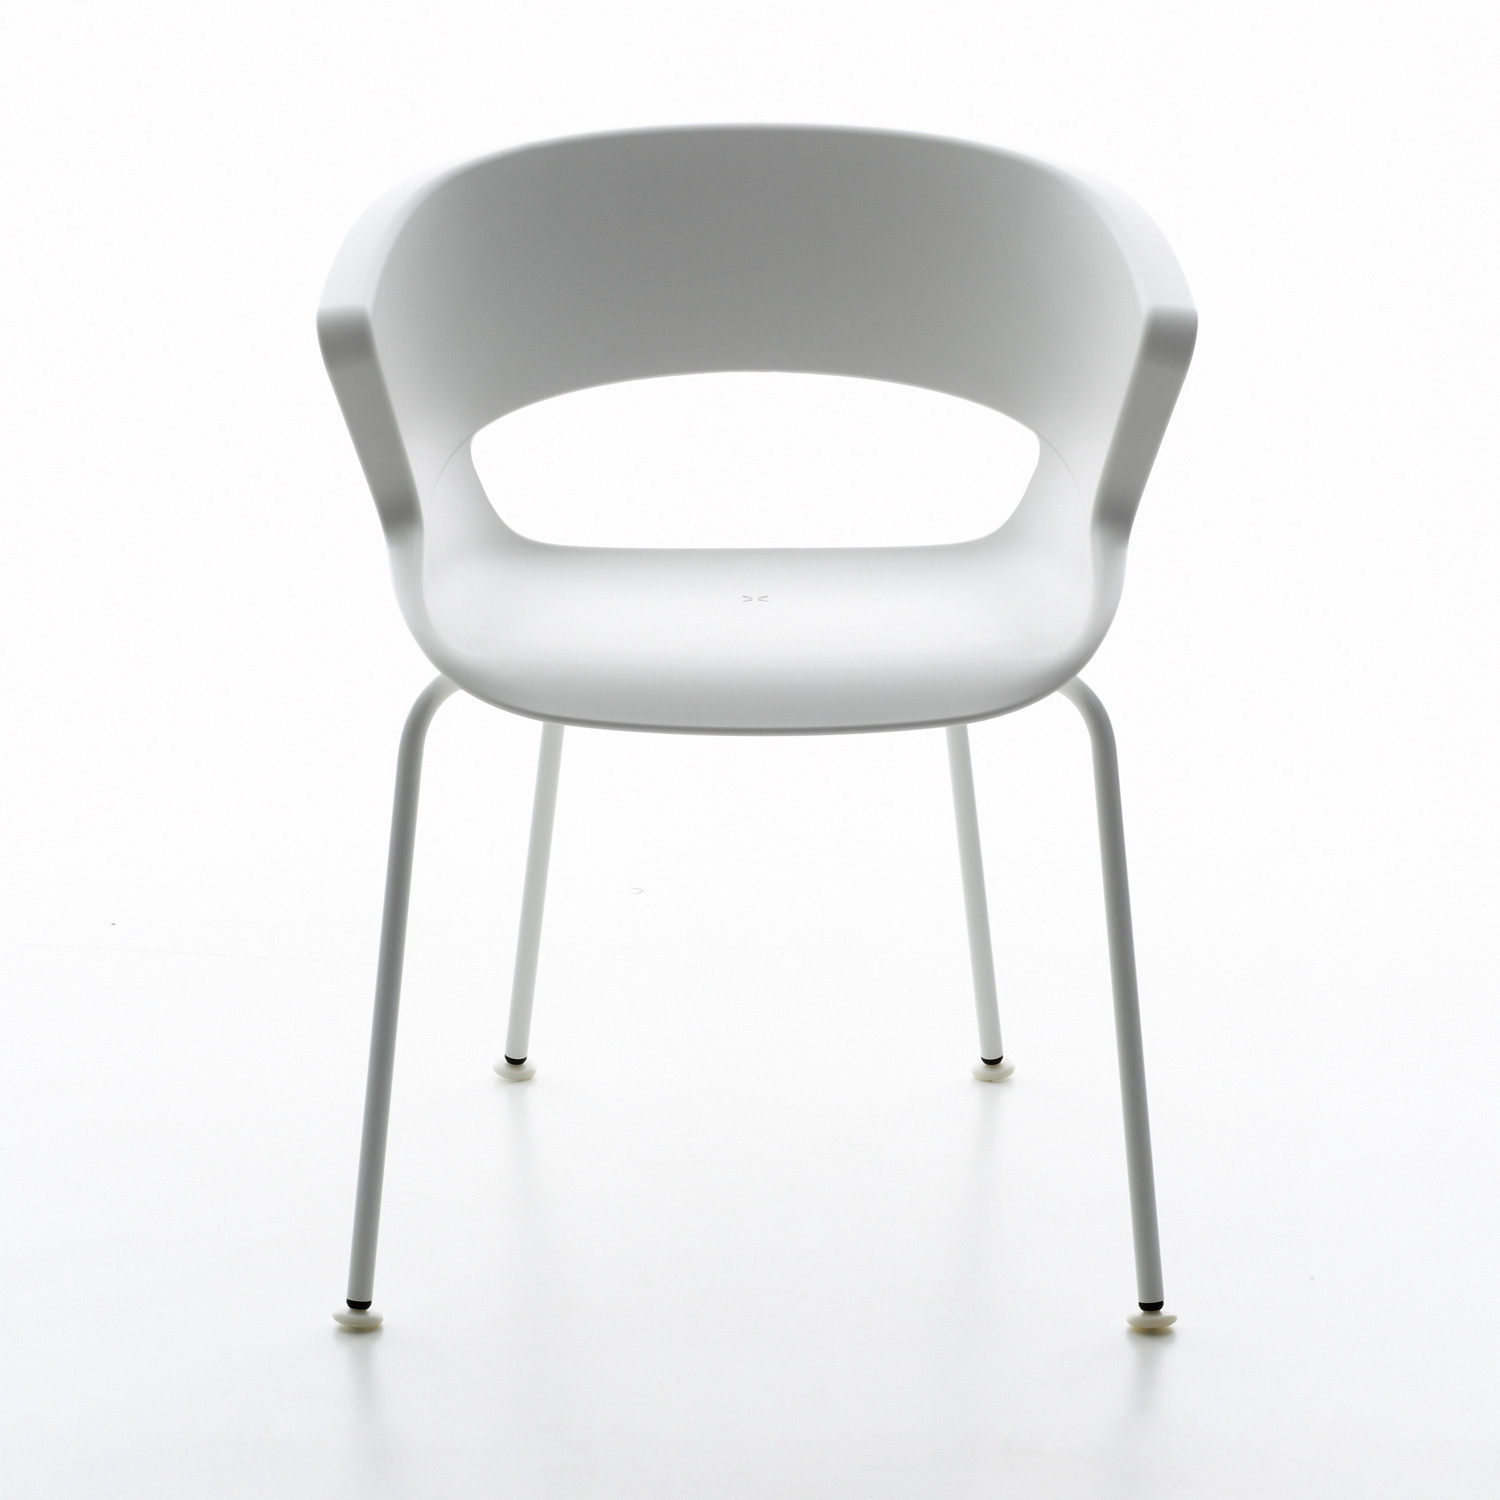 Zed Seating